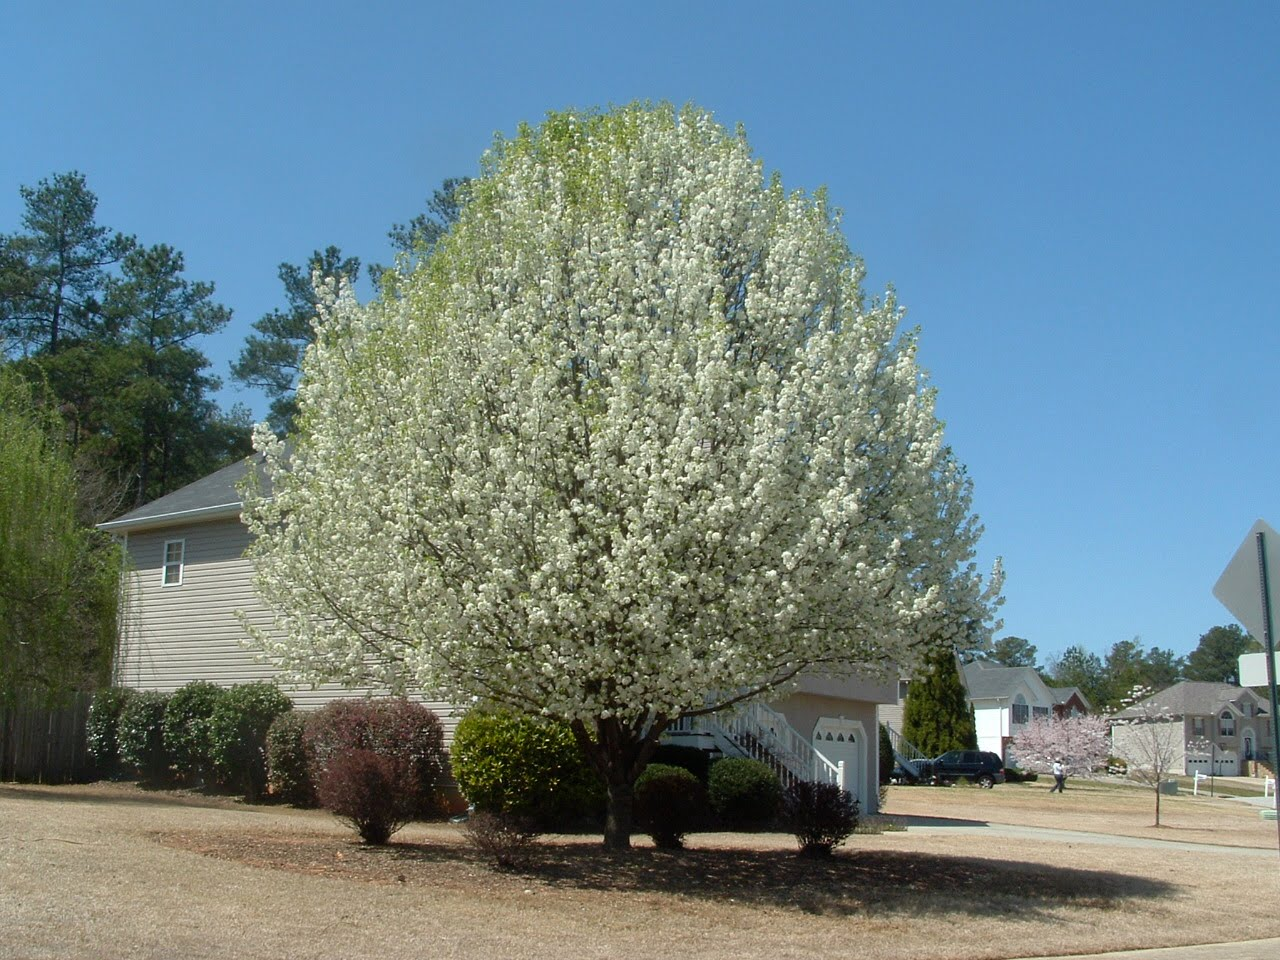 Douglasville georgia flowering trees unsurrounded by other trees the purity of the white blooms makes one gasp with appreciation mightylinksfo Choice Image